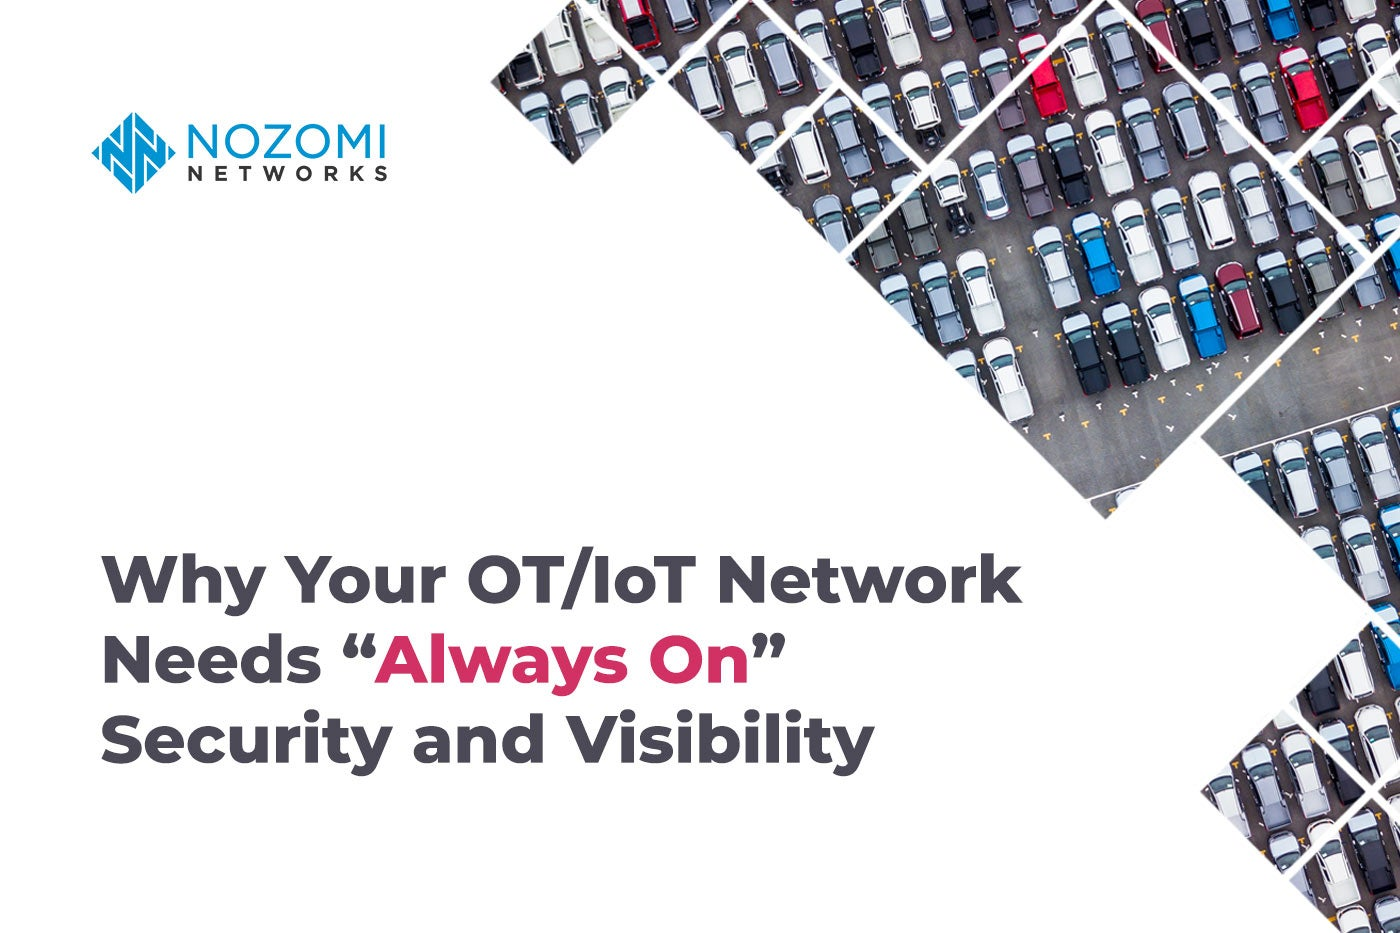 "Why Your OT/IoT Network Needs ""Always On"" Security and Visibility"